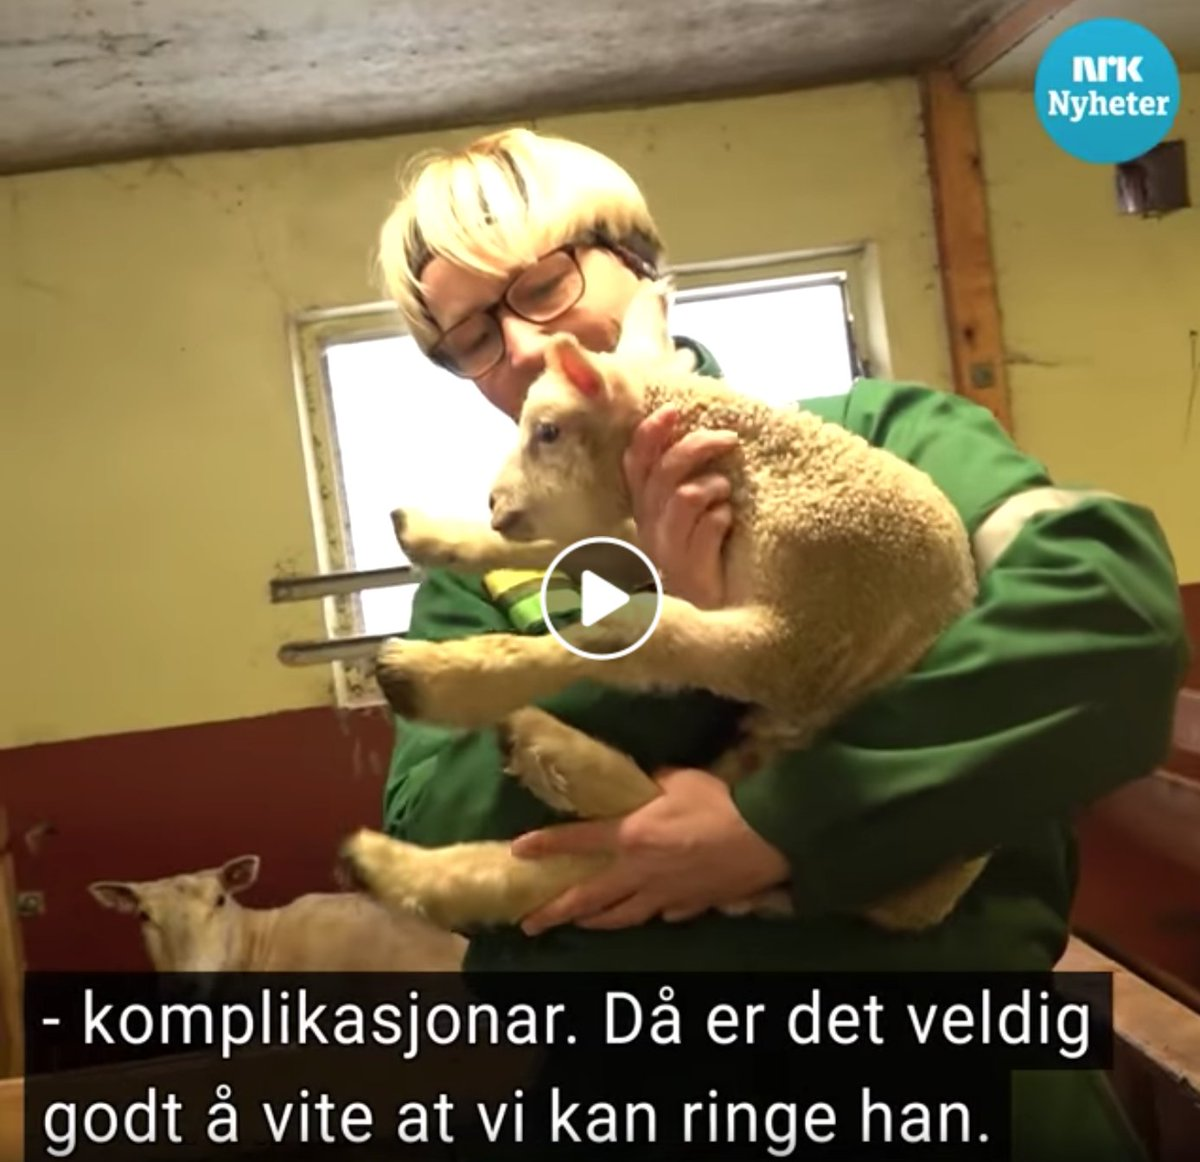 A wonderful story about lambing in #lockdown. This Norwegian farmer couldnt leave his care home to attend lambing season this year. Using #KOMP video call, the farmer could take part in his favourite time of year, and remotely helped deliver the newborns: facebook.com/68272763593/po…